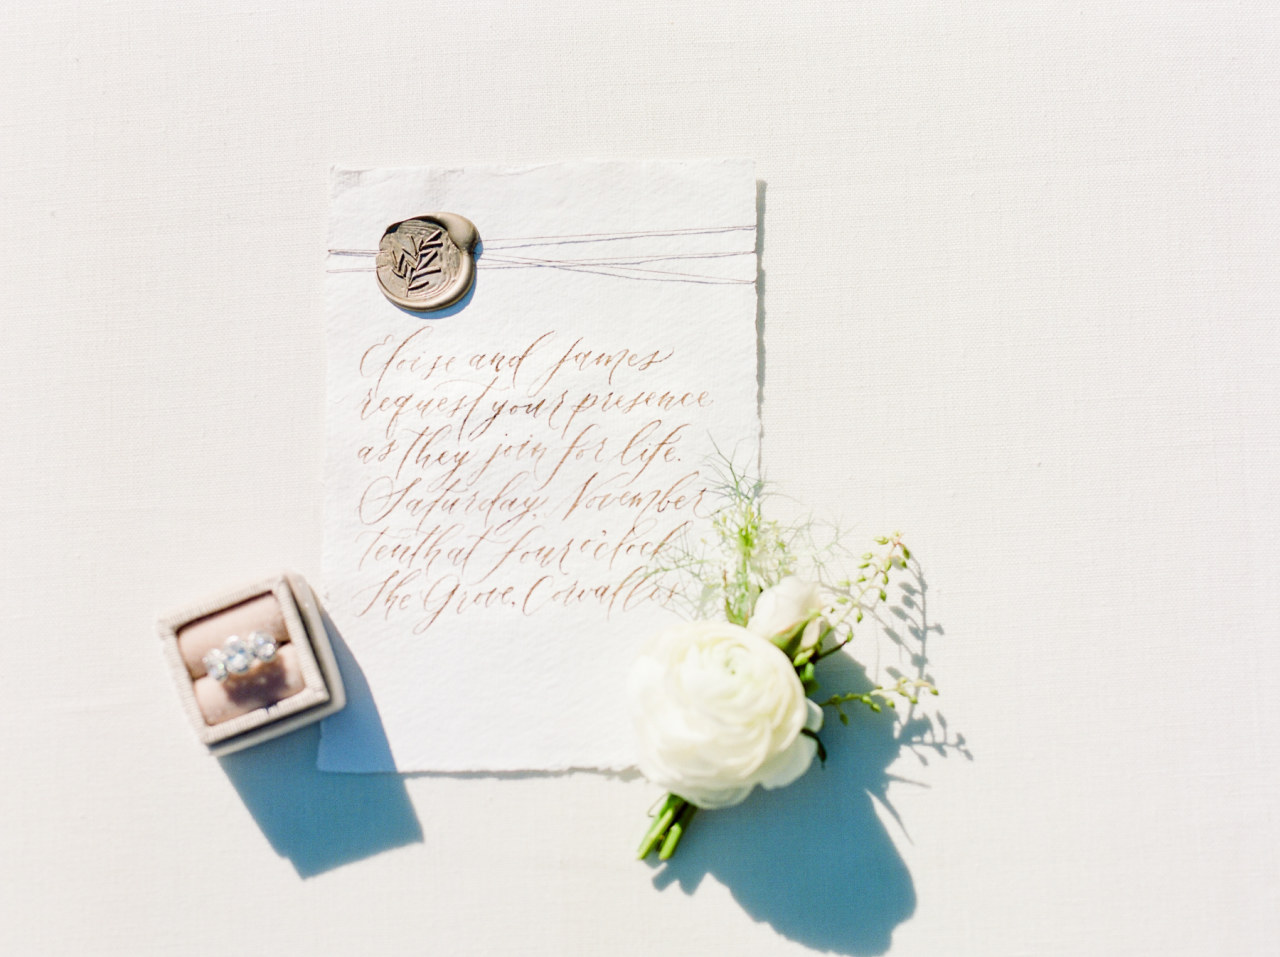 Timeless heirloom wedding inspiration. Handmade paper calligraphy invitations with wax seal by Caitlin O'Bryant Design. Photography by Mylyn Wood Photography. Paper Goods by Caitlin O'Bryant Design. Florals: Caroline Reusen Flowers. Models: Jens Behind the Lens. HAMU: Coreene Collins Hair. Styling Assistant: Jessica Staley.